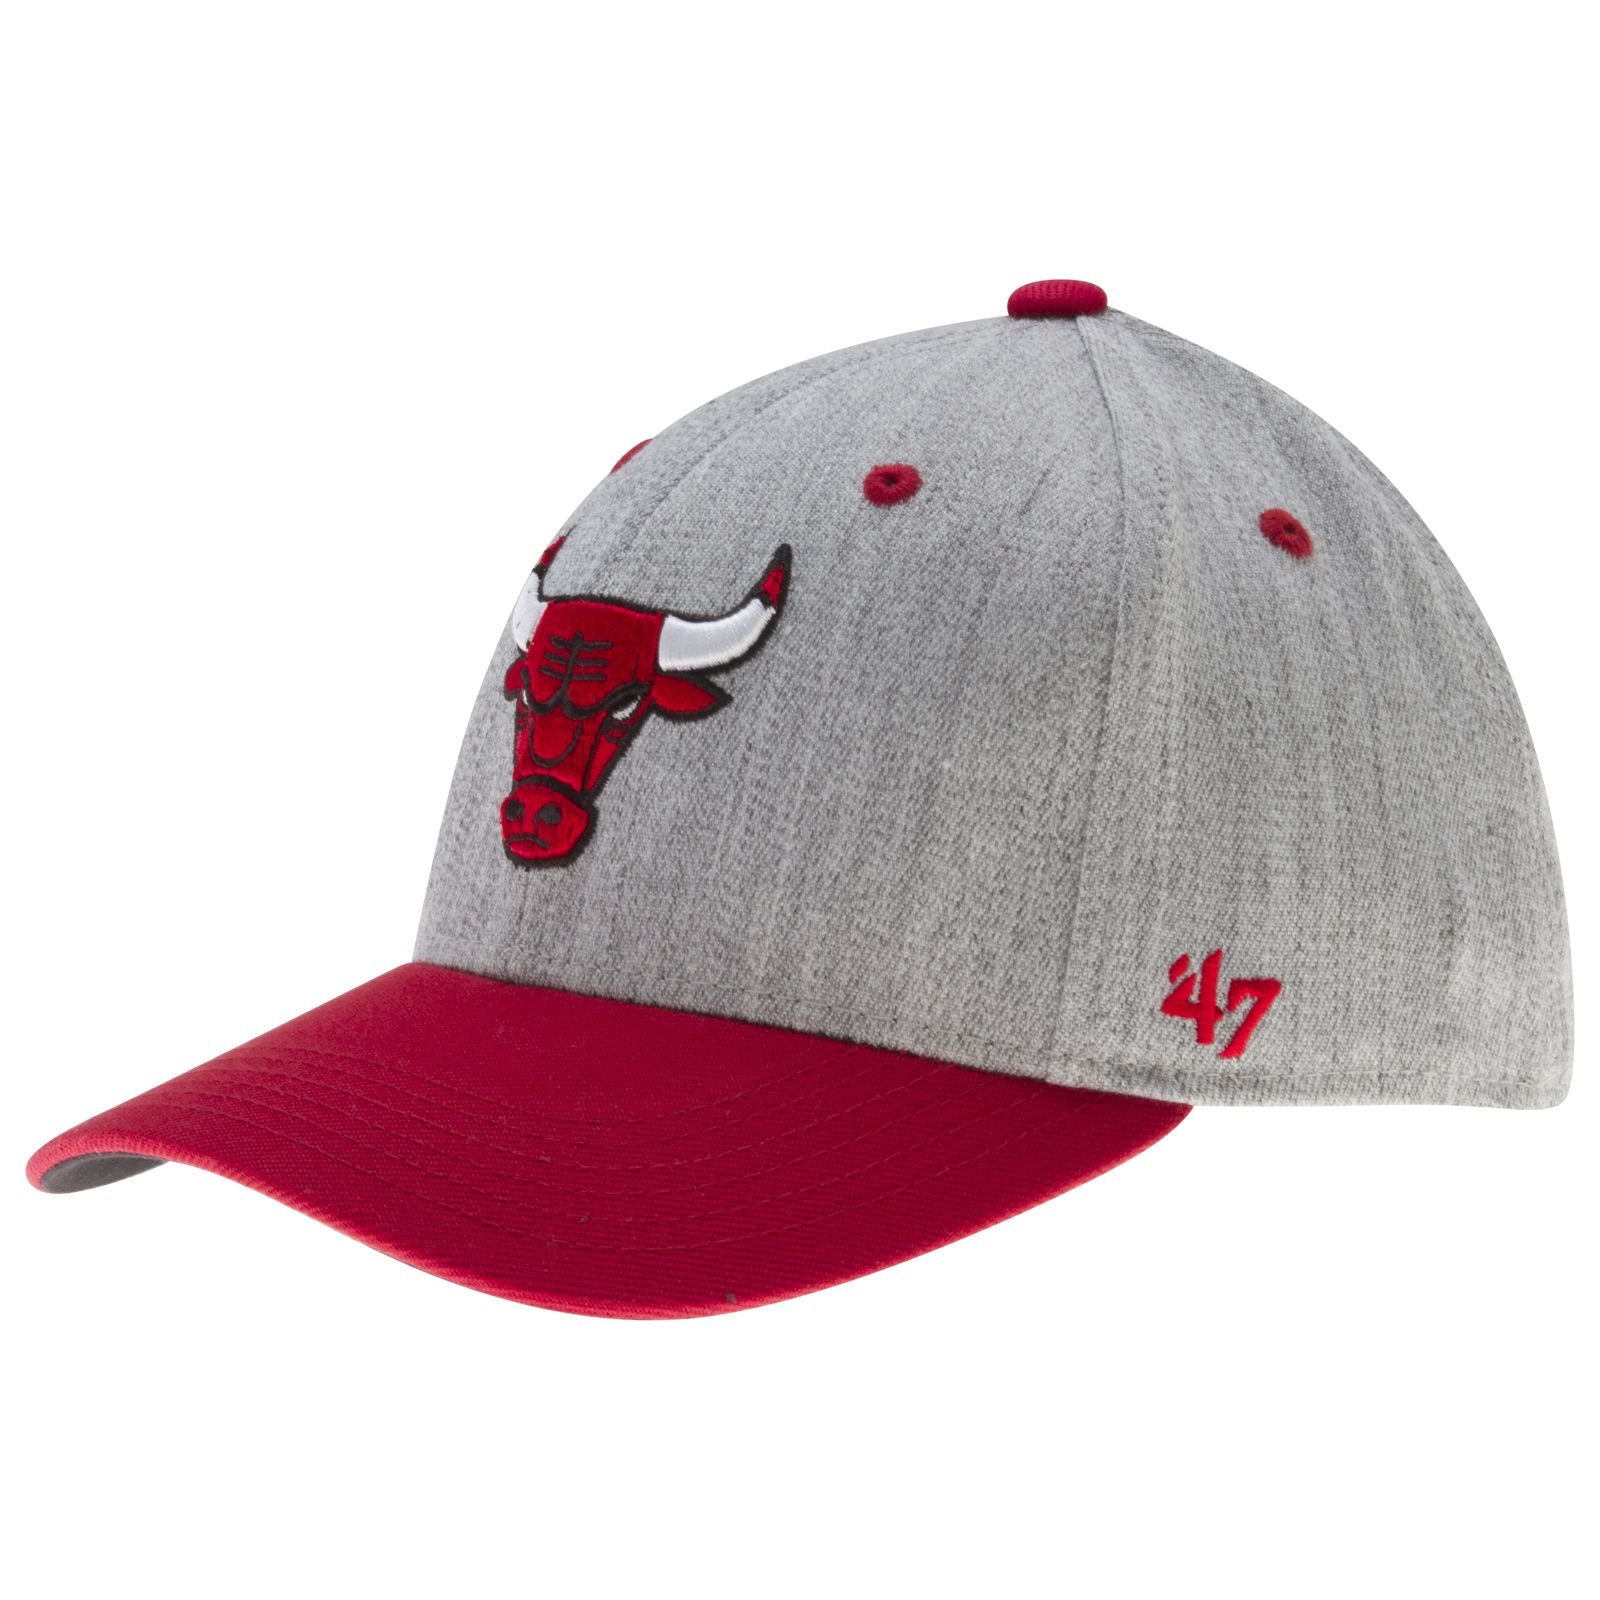 Chicago Bulls Heather Grey and Red Primary Logo Flex Fit Hat by  47  Chicago   ChicagoBulls  Bulls  BullsNation 1f6f4bdda69